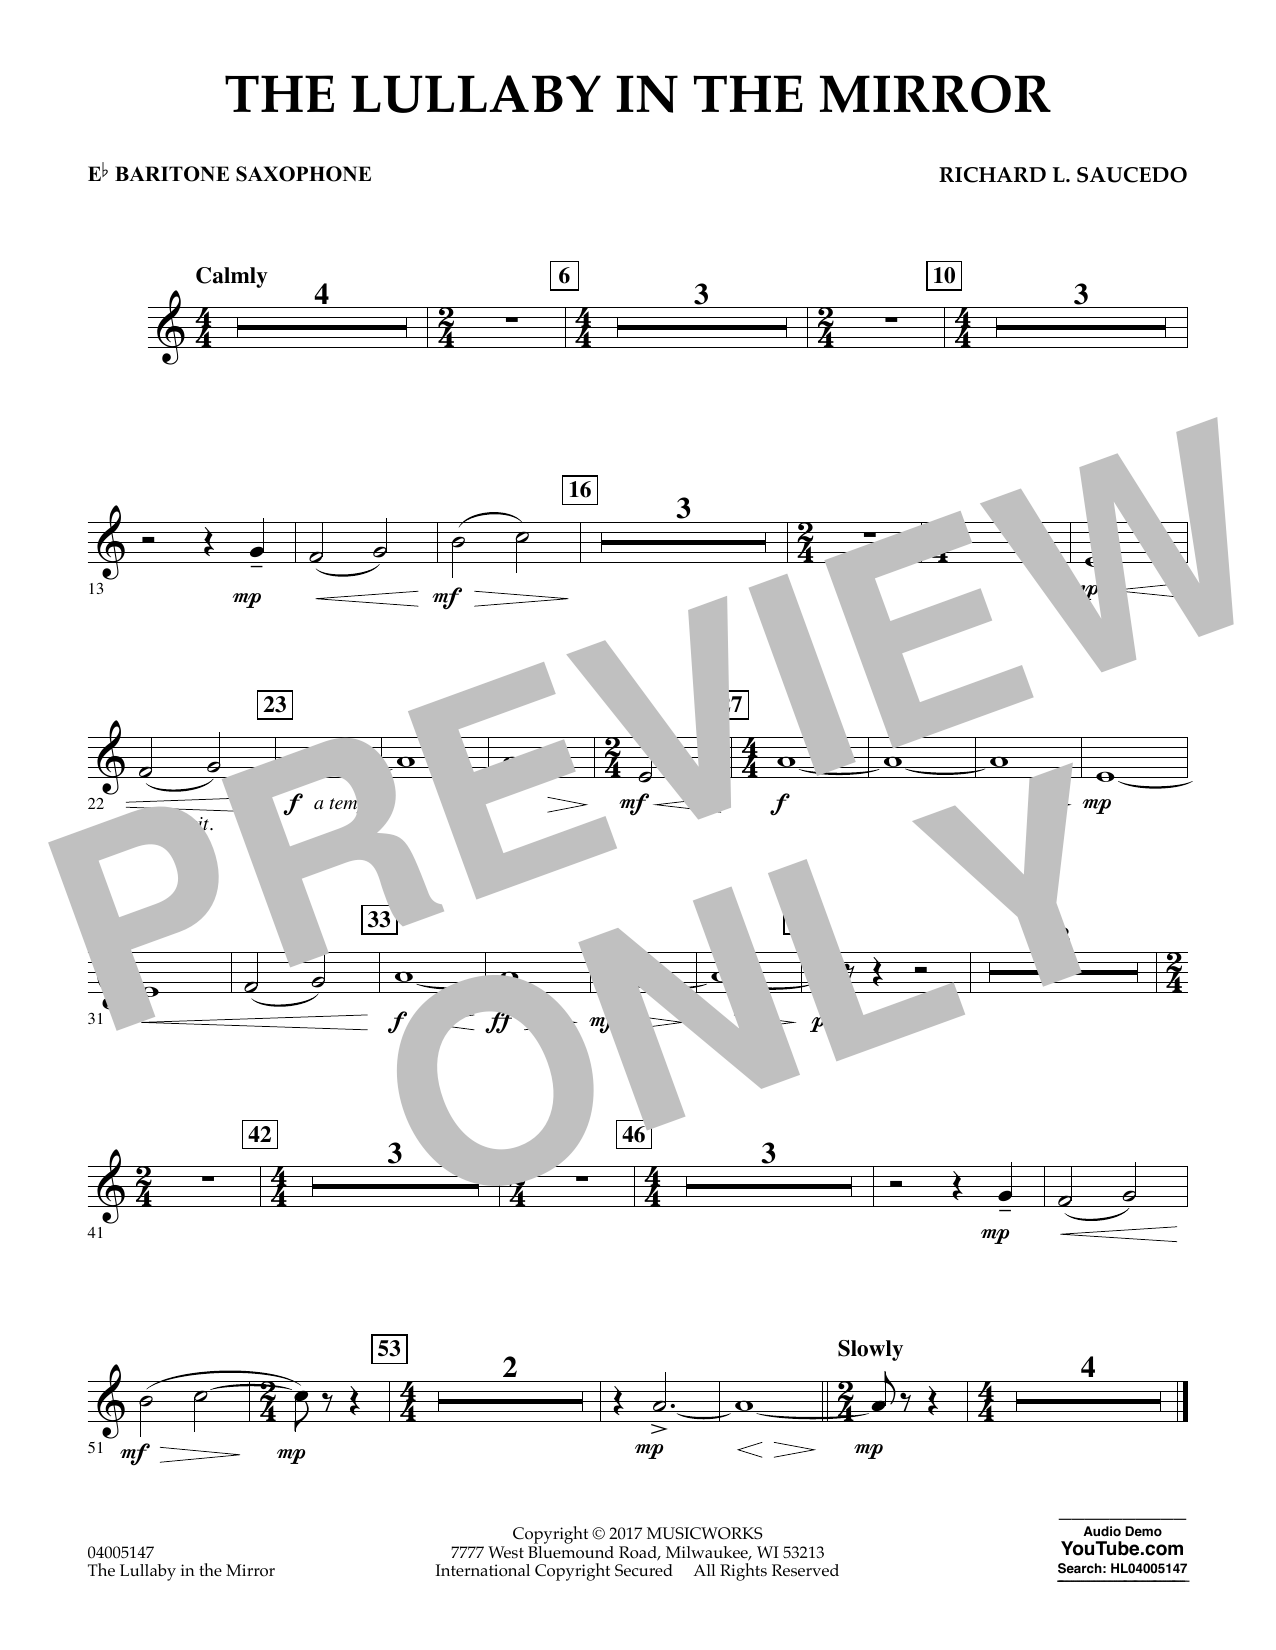 Richard L. Saucedo The Lullaby in the Mirror - Eb Baritone Saxophone sheet music notes and chords. Download Printable PDF.